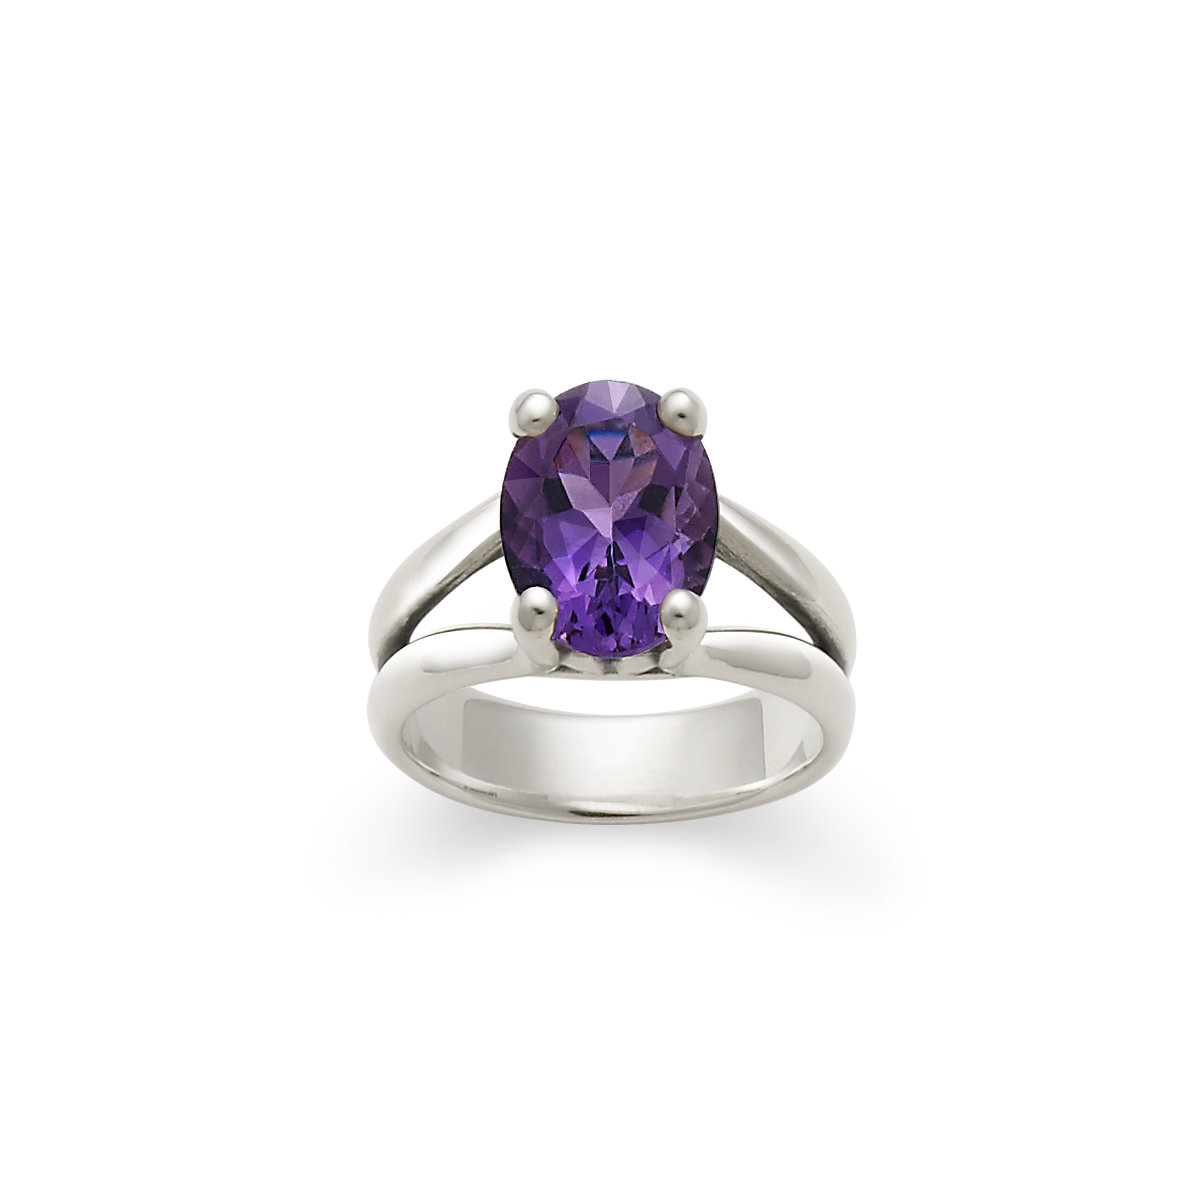 ring silver anillos in square natural lamoon sterling item rings pillows amethyst from fine purple cut engagement women jewelry